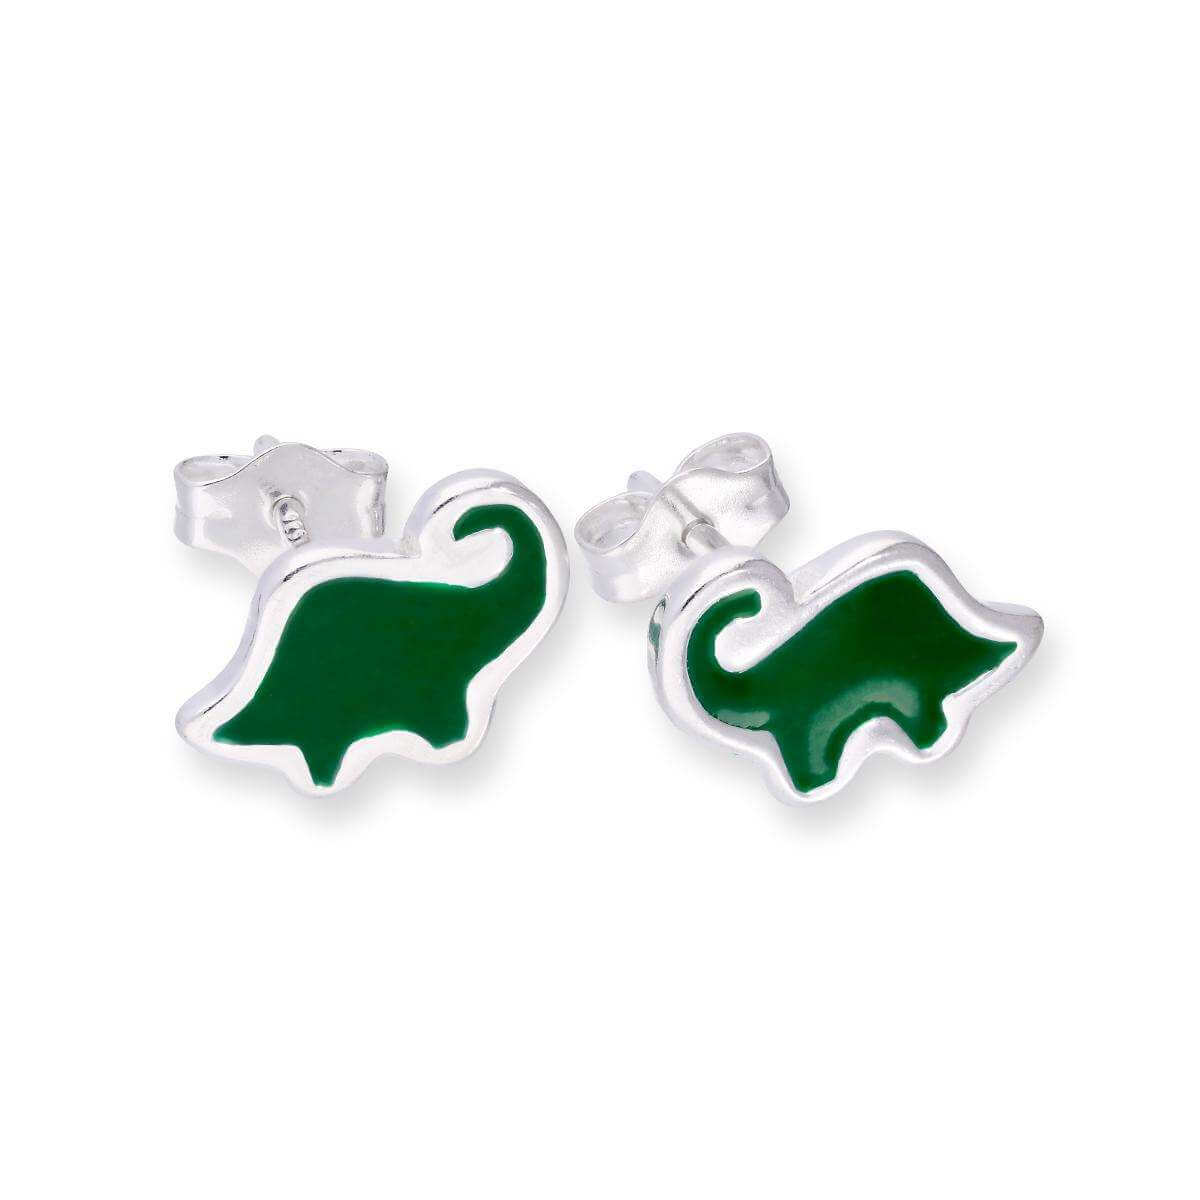 4ff545053 Sterling Silver & Green Enamel Dinosaur Stud Earrings | JewelleryBox ...